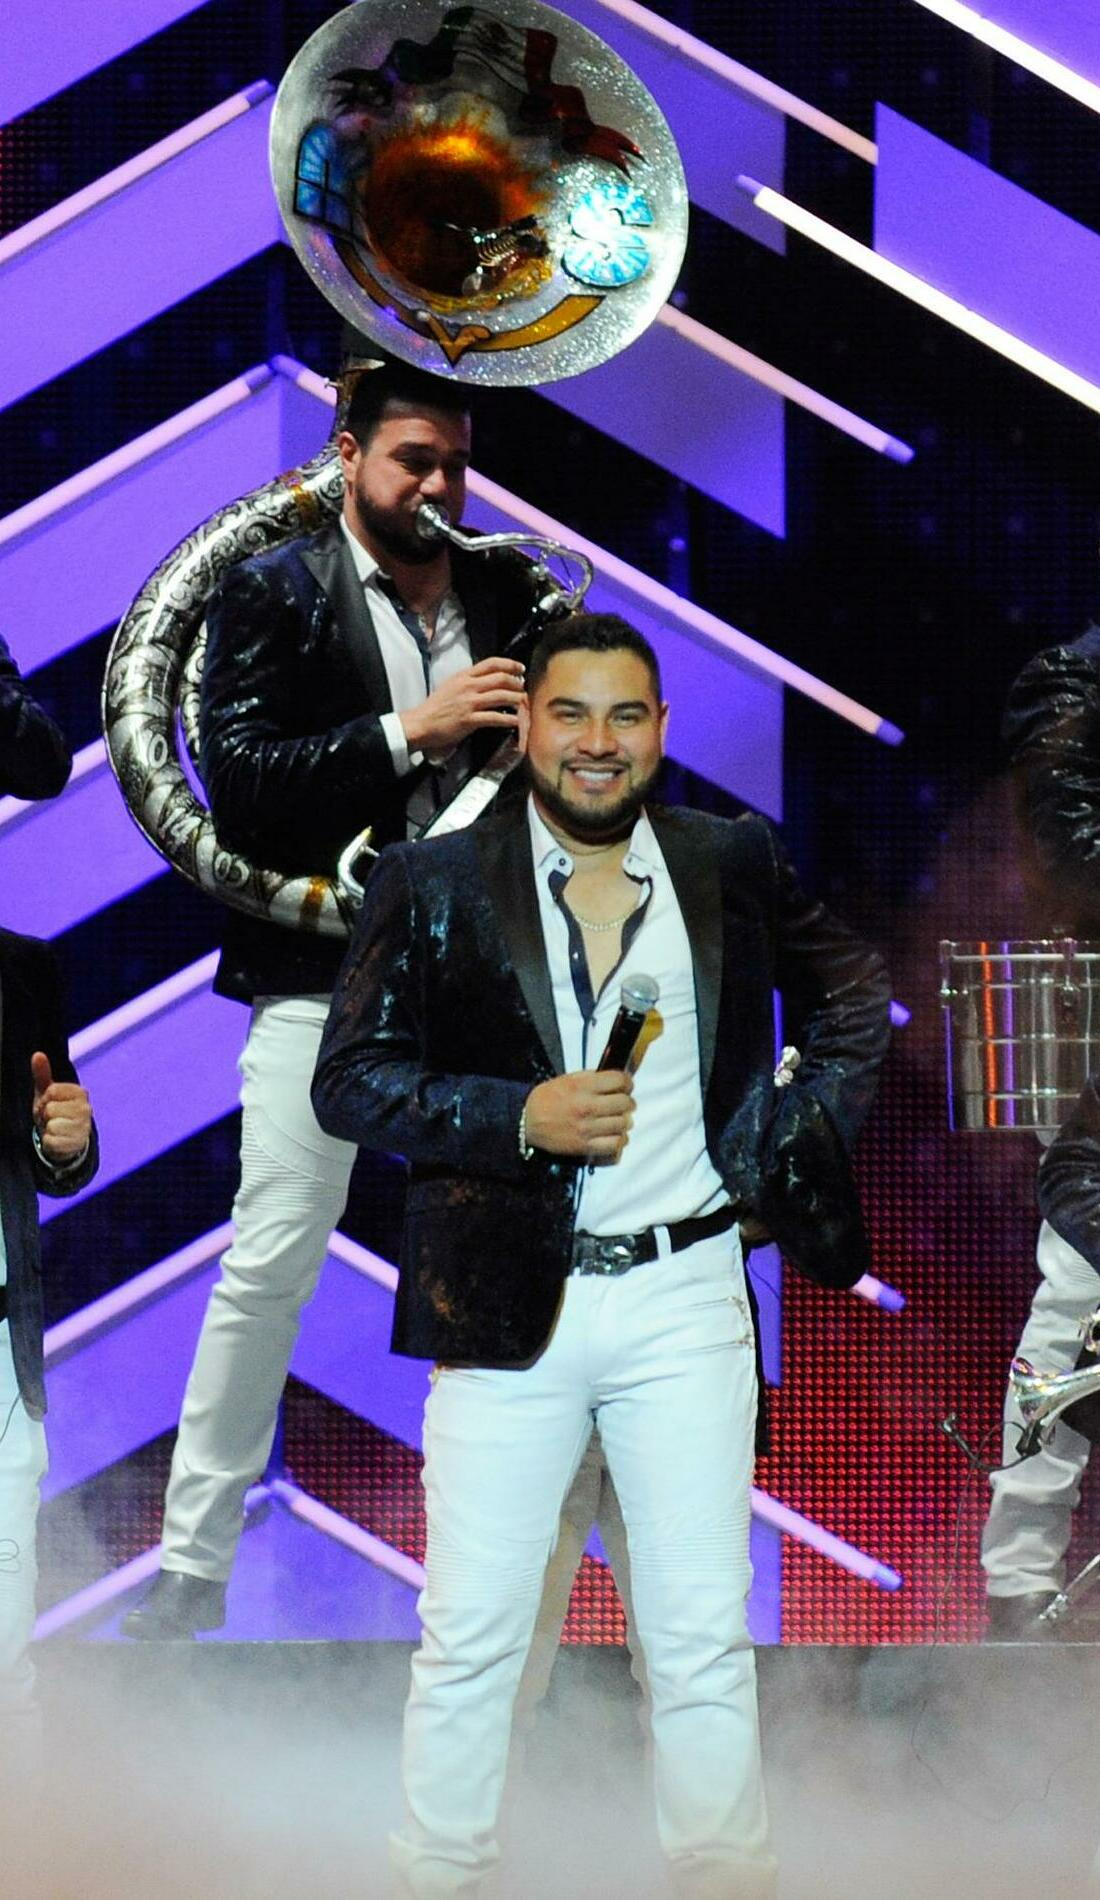 A Banda MS live event